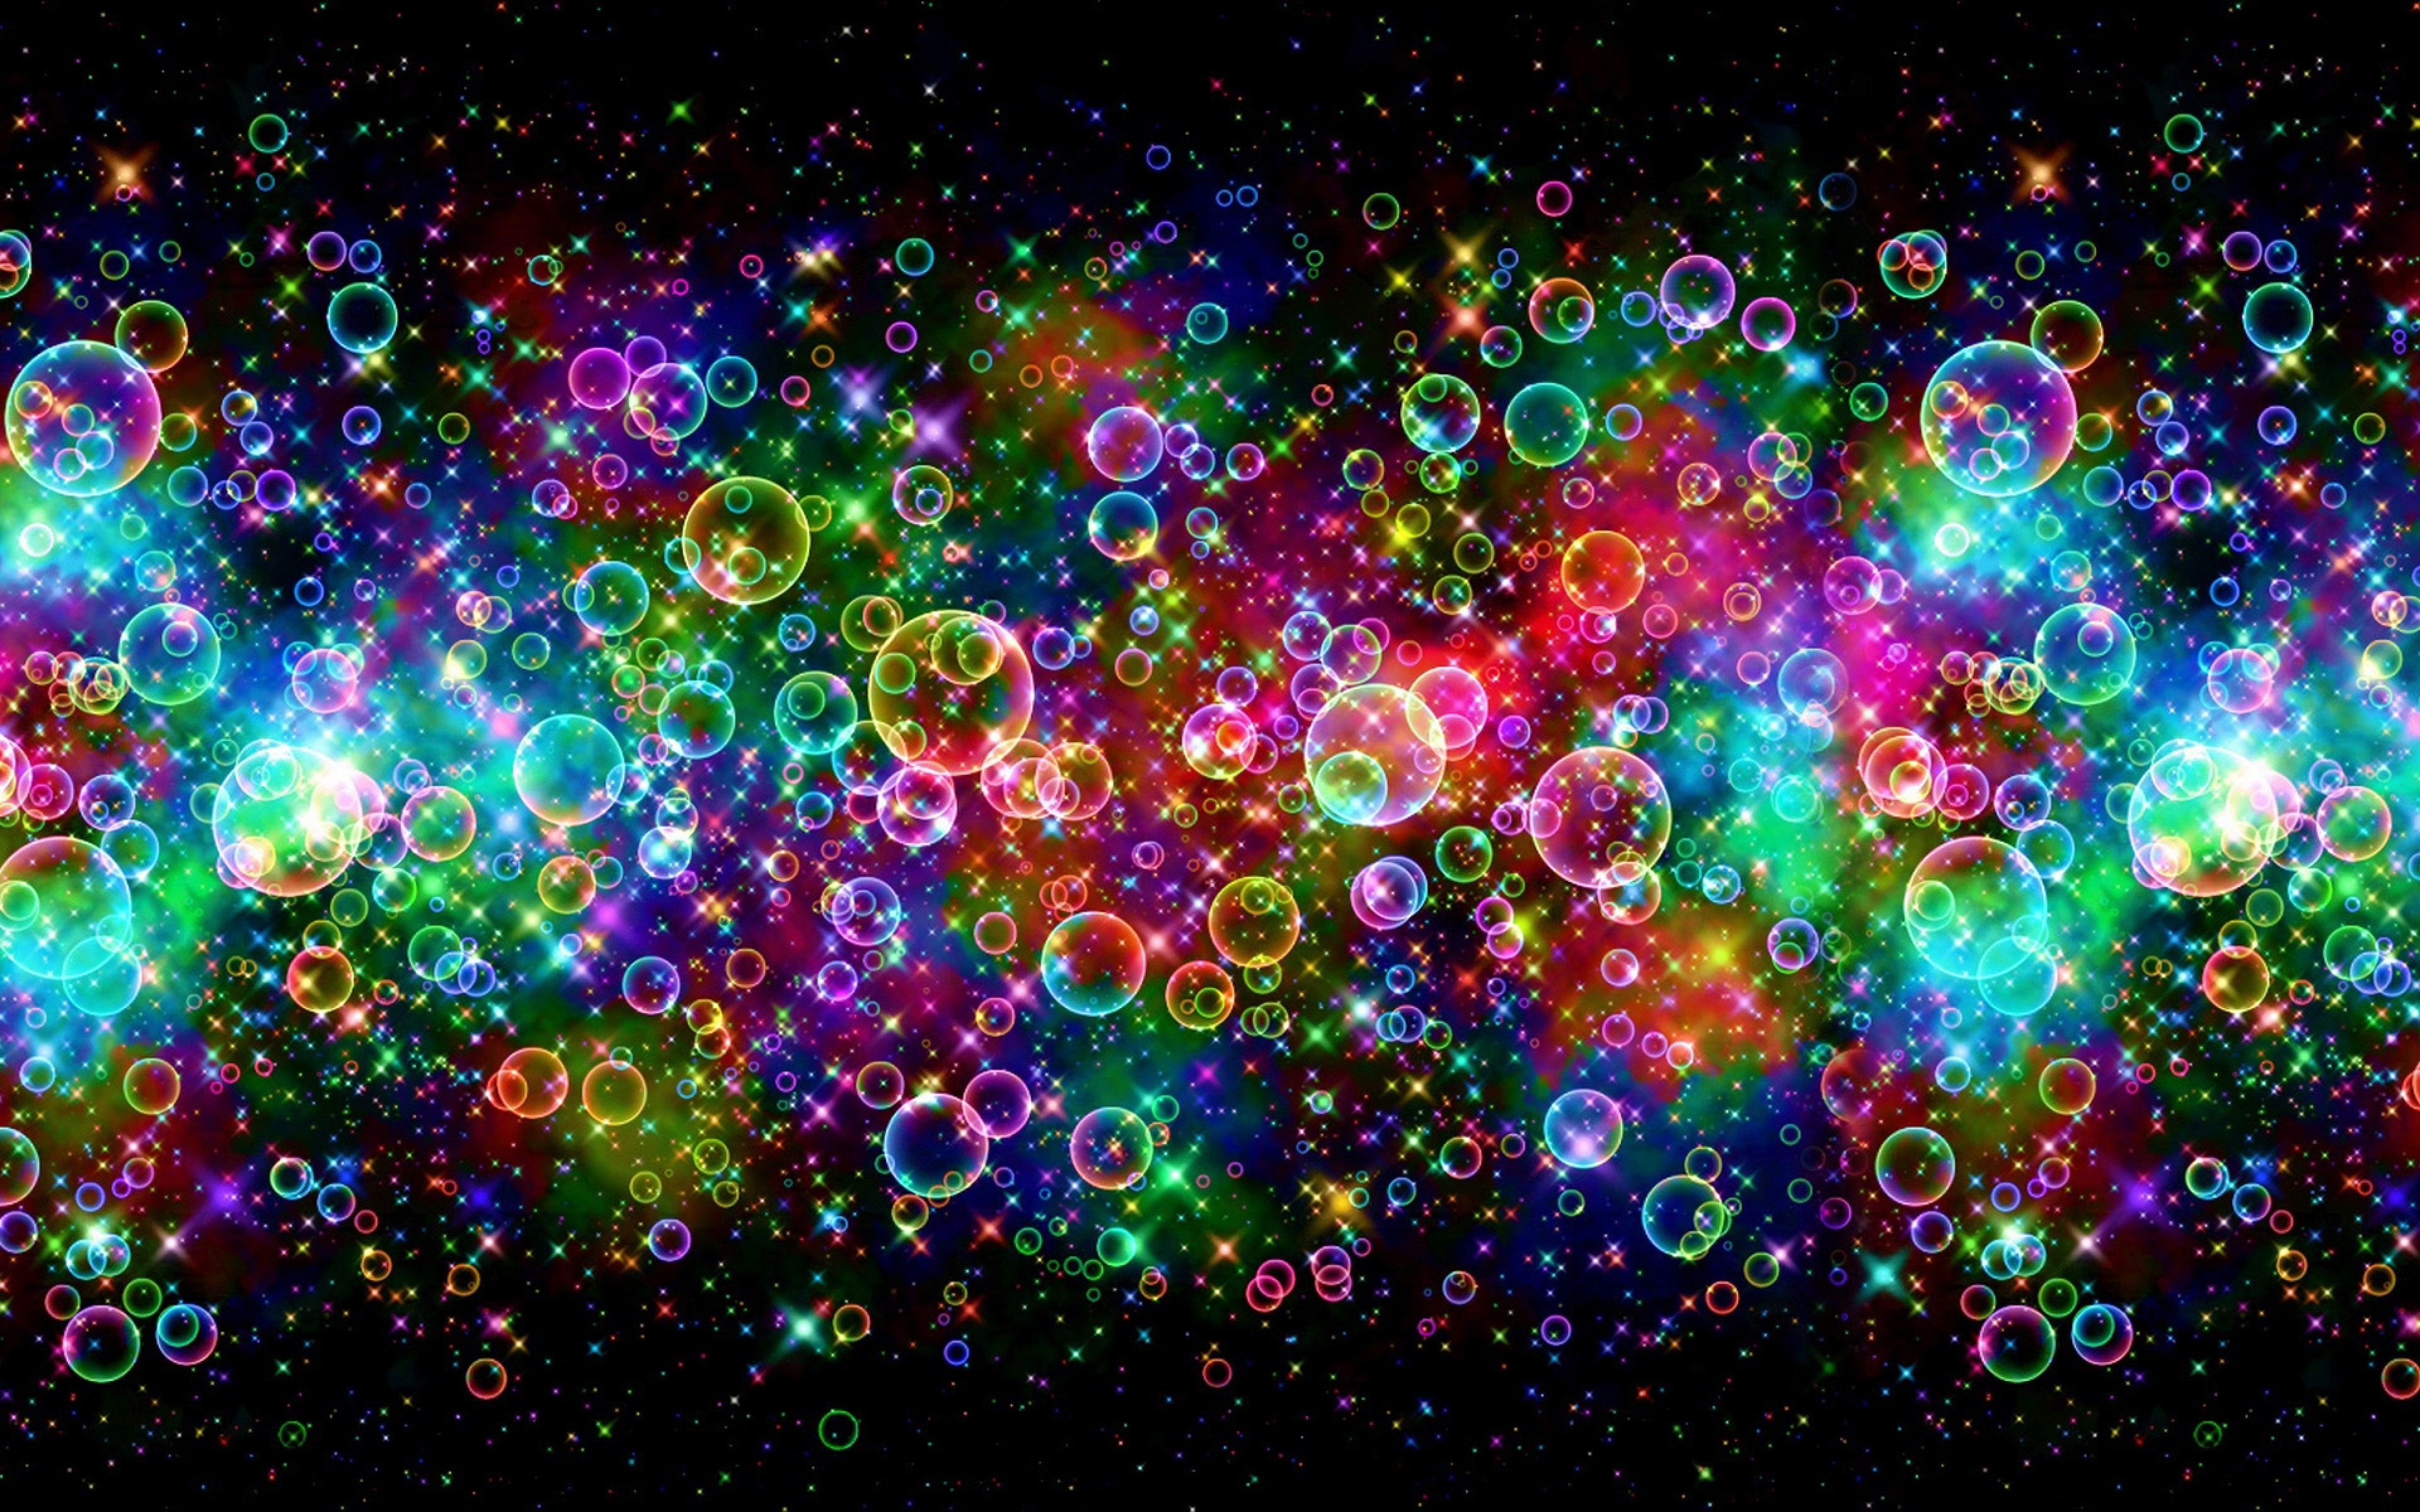 bubbles digital art desktop colorful background hd wallpaper 3840x2400